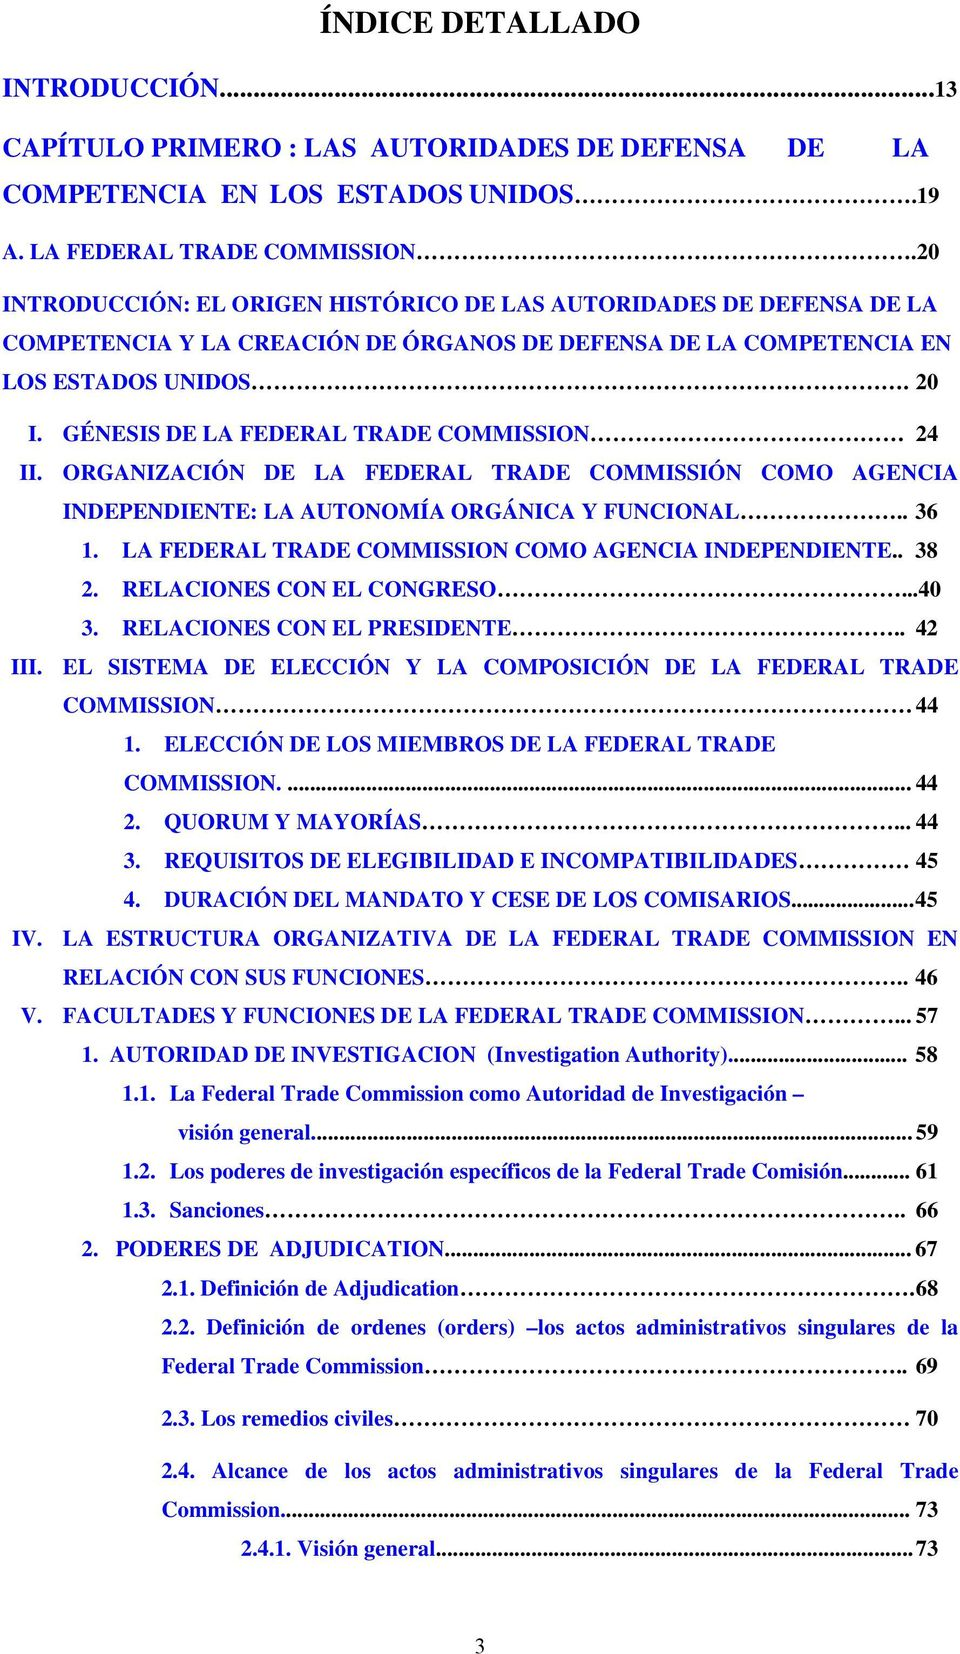 GÉNESIS DE LA FEDERAL TRADE COMMISSION 24 II. ORGANIZACIÓN DE LA FEDERAL TRADE COMMISSIÓN COMO AGENCIA INDEPENDIENTE: LA AUTONOMÍA ORGÁNICA Y FUNCIONAL.. 36 1.